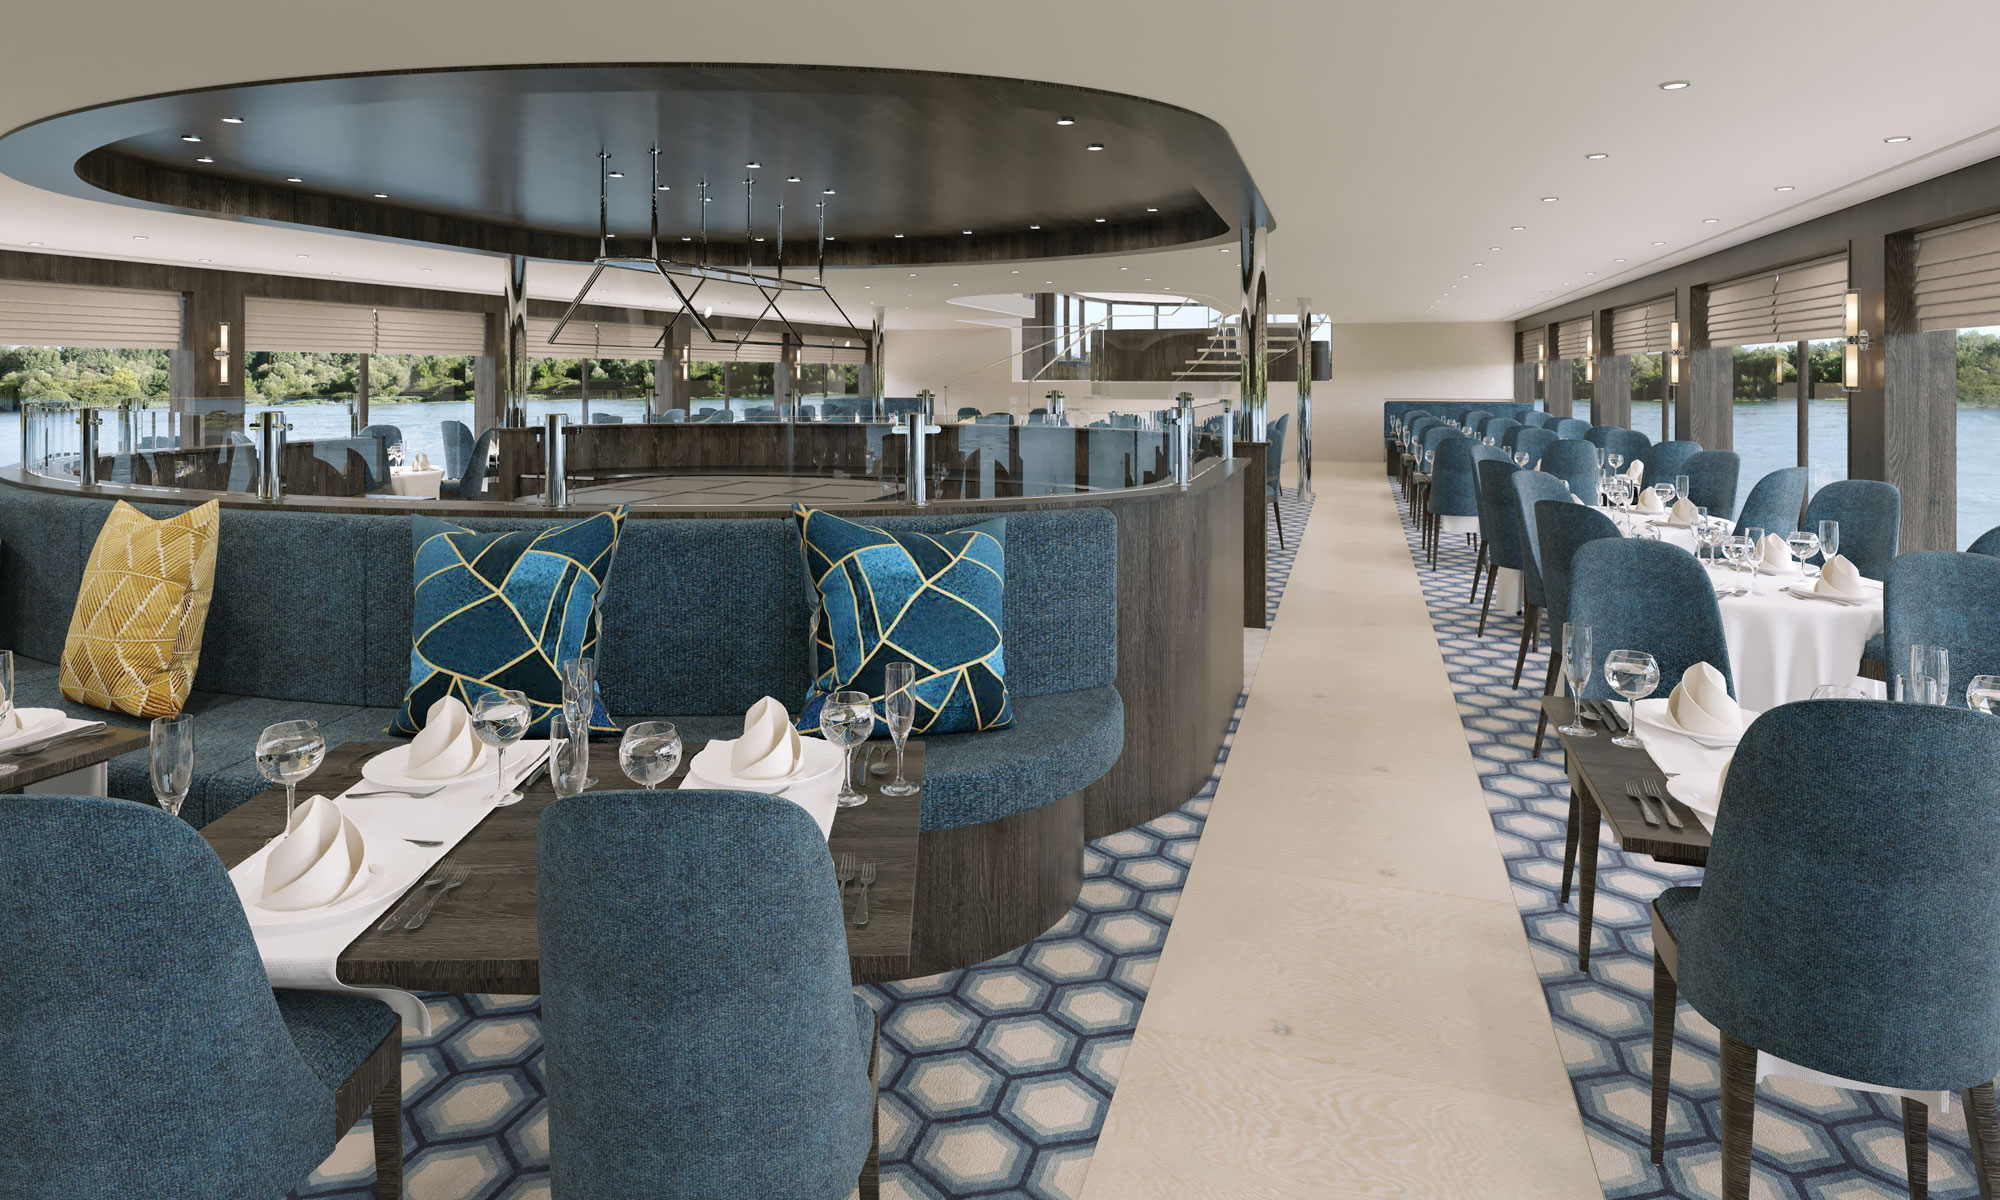 nickoVISION Hauptrestaurant. Foto: nicko cruises